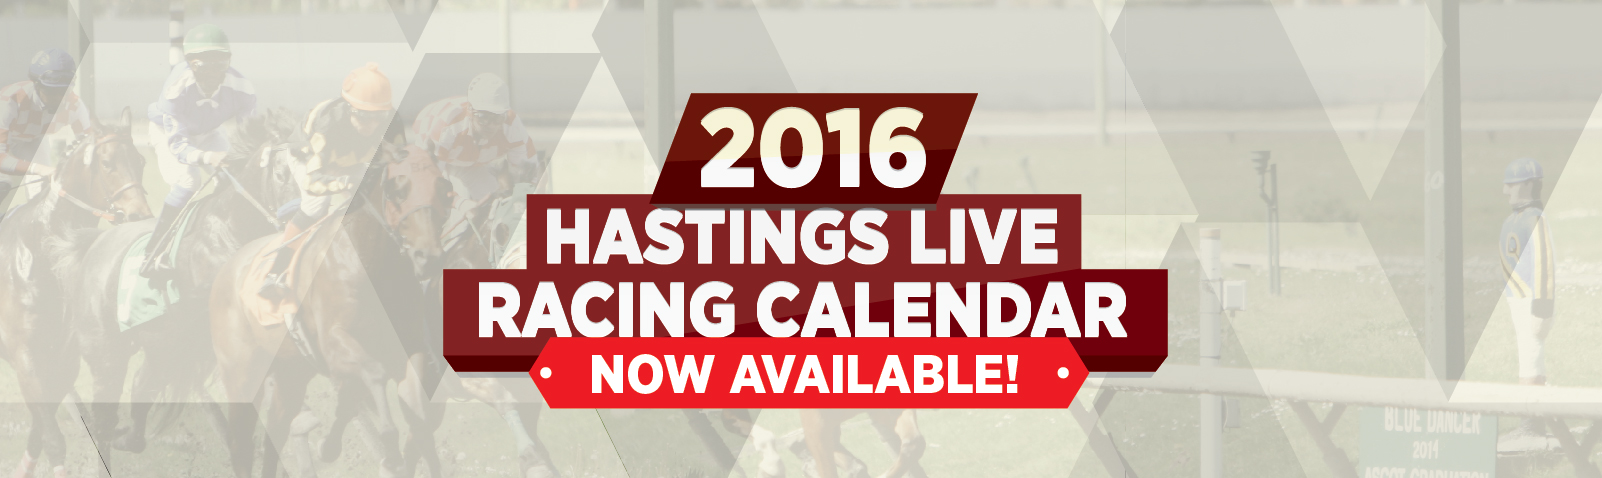 ROP15-188-2016-Racing-Calendar-Promo_Revolution-Slider1